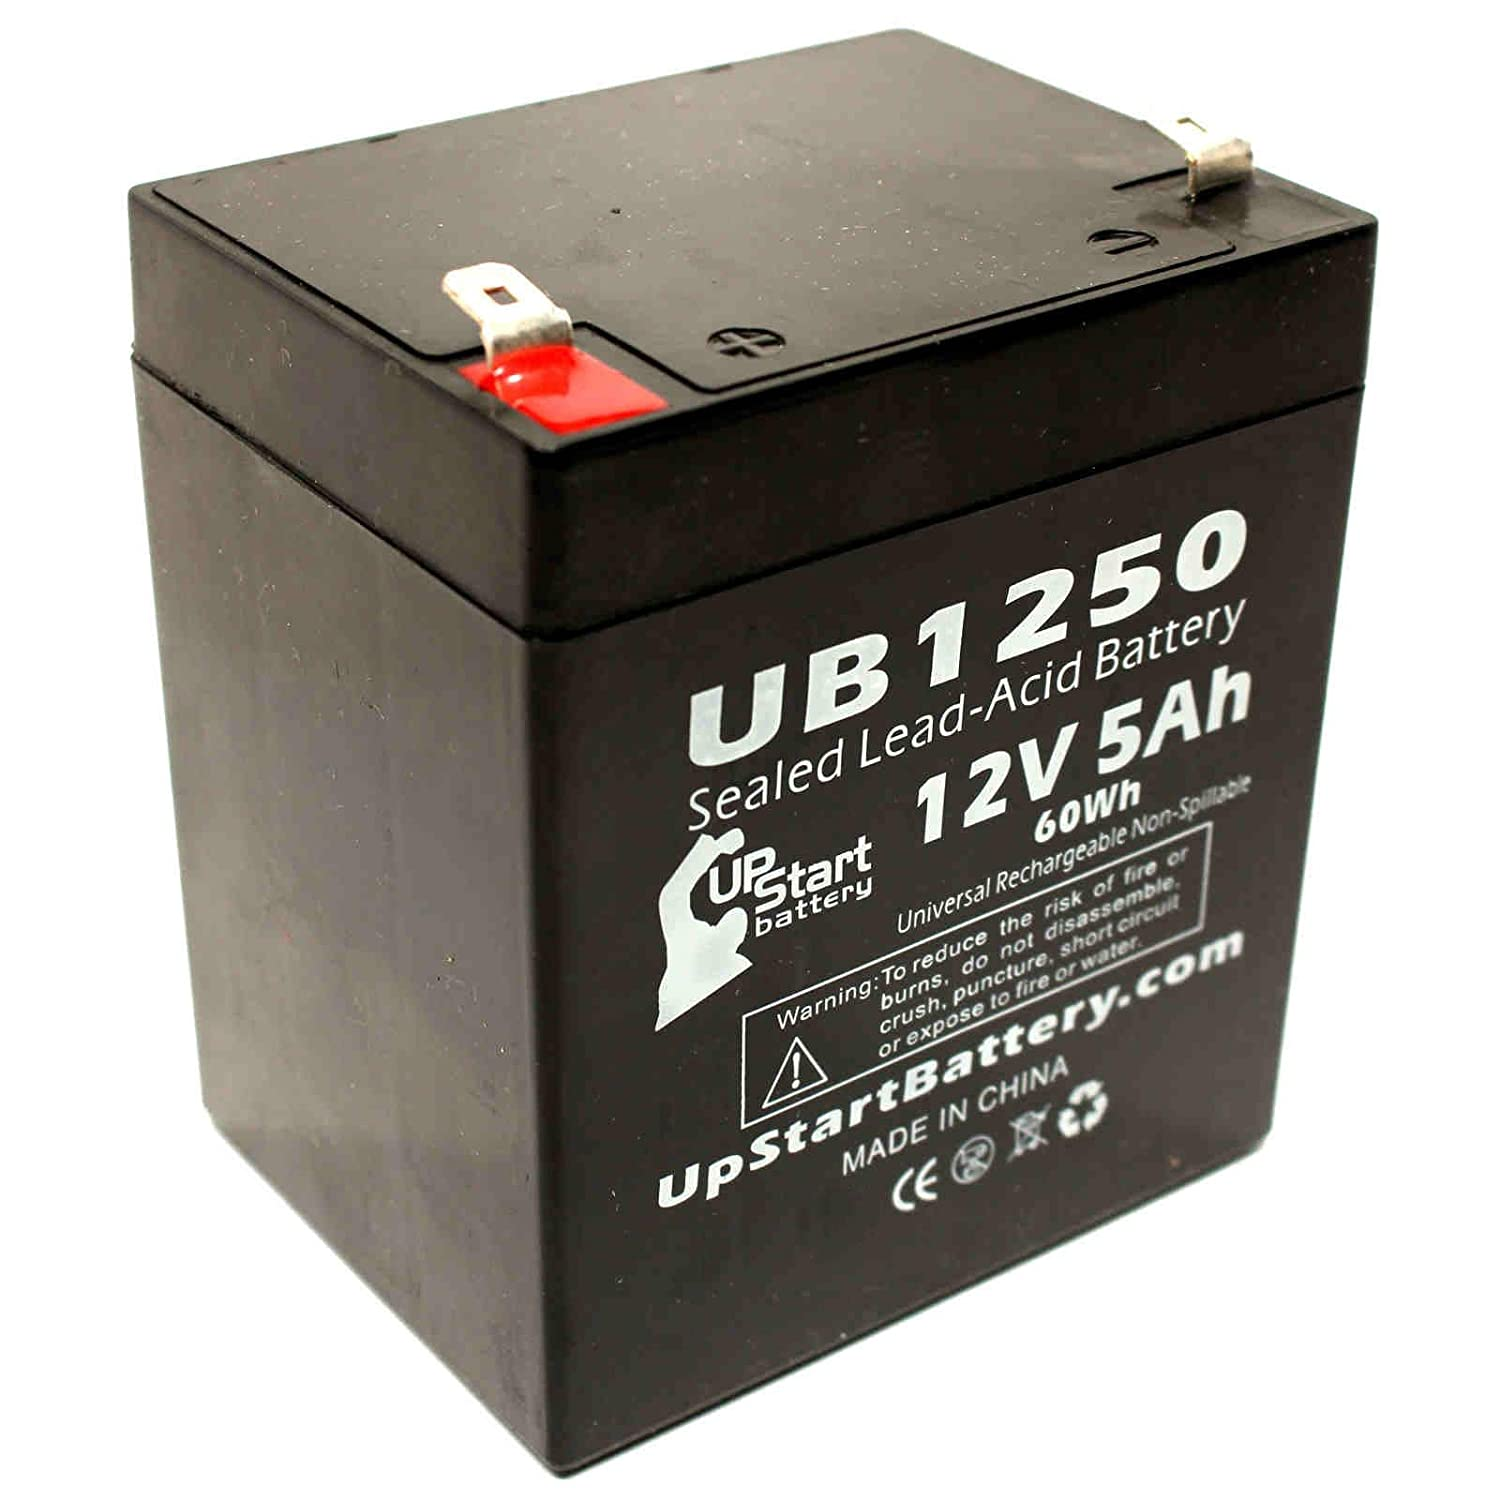 BB Battery BP5-12 Battery - Replacement UB1250 Universal Sealed Lead Acid Battery (12V, 5Ah, 5000mAh, F1 Terminal, AGM, SLA) - Includes TWO F1 to F2 Terminal Adapters - Also For Ademco 4110XM, 4110DL, F6H500, F6C1000-TW-RK